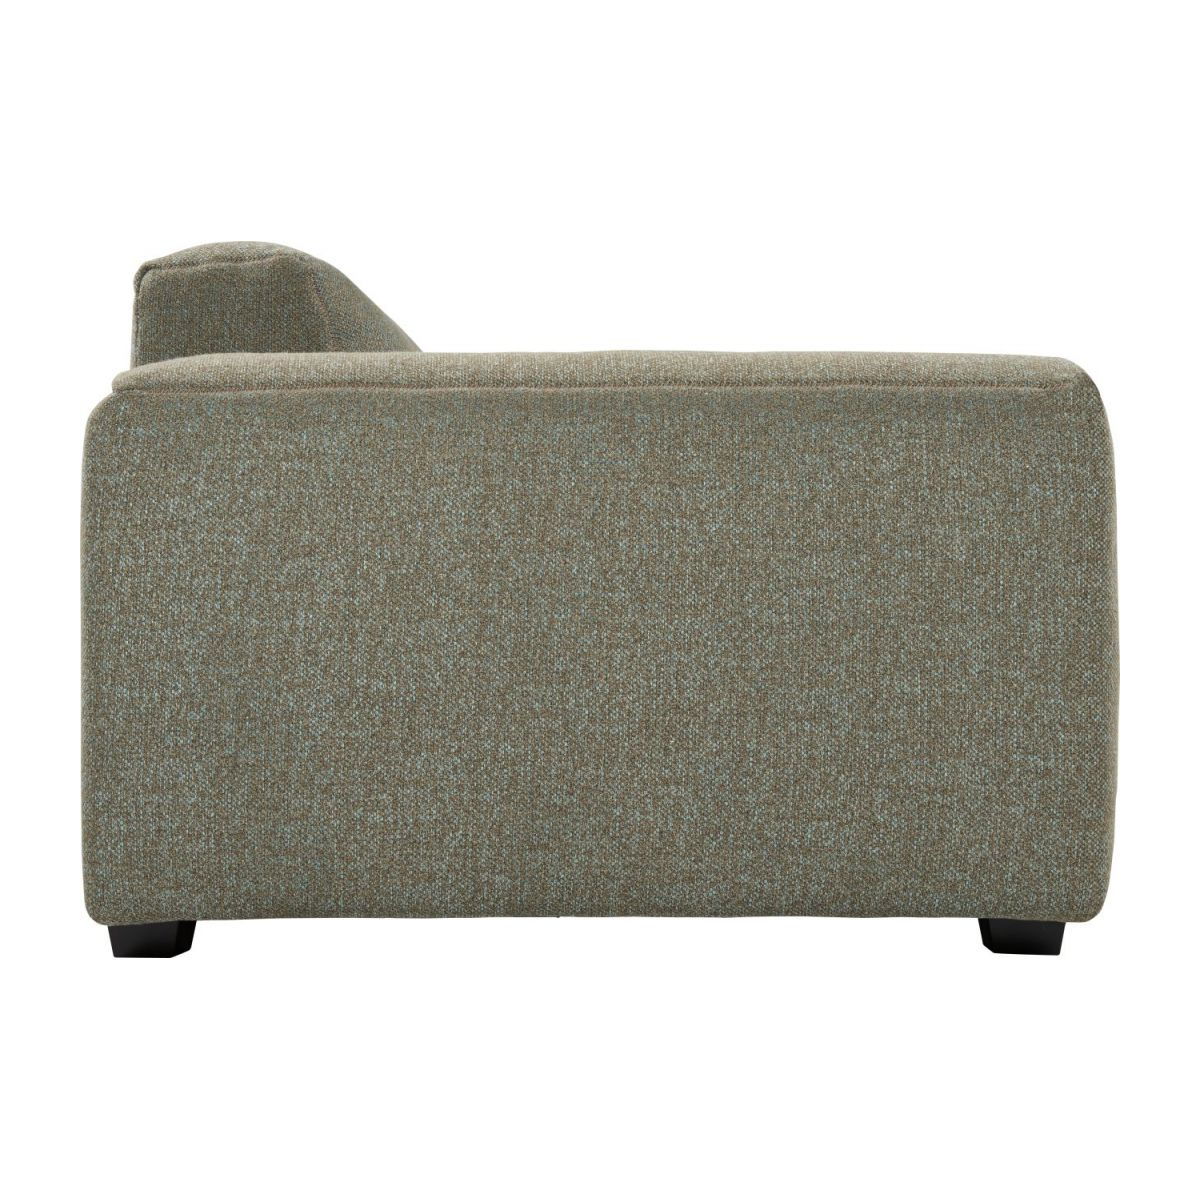 3 seater sofa in Lecce fabric, slade grey n°4